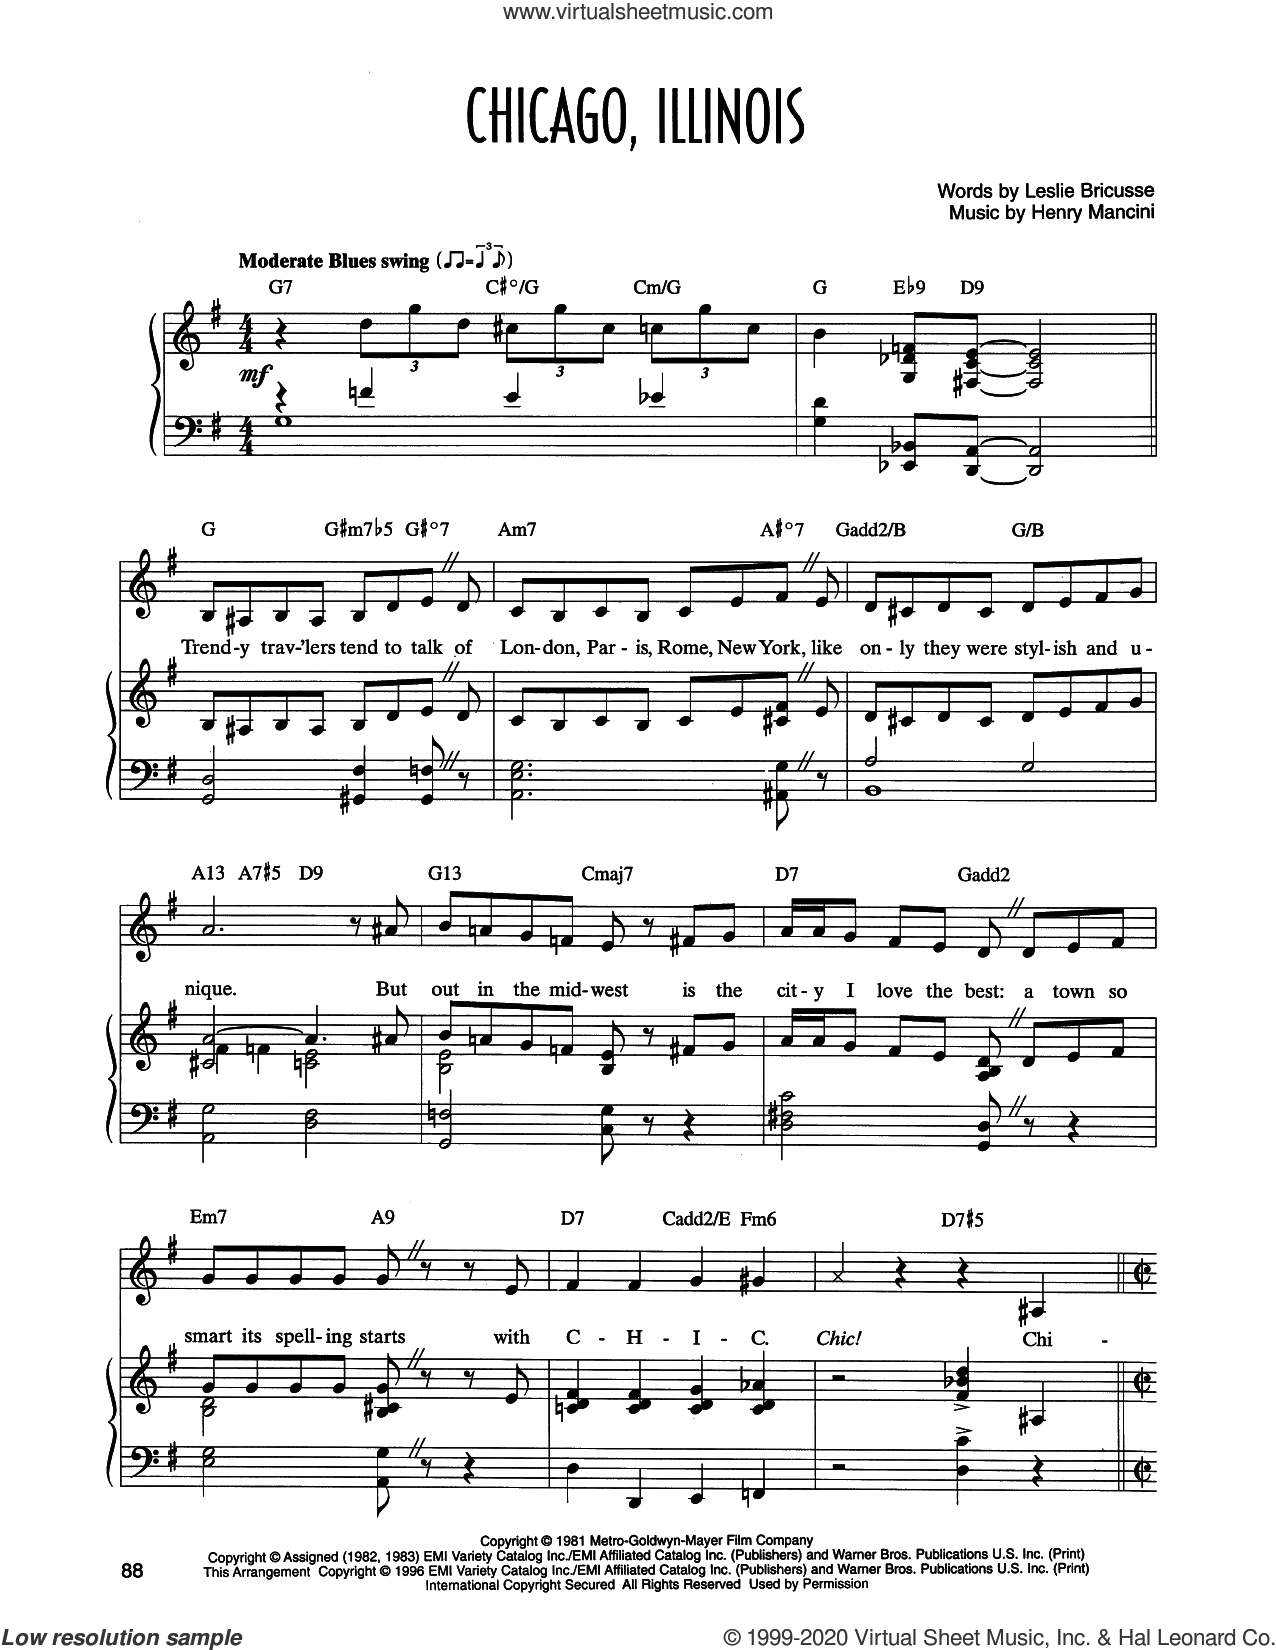 Chicago, Illinois (from Victor/Victoria) sheet music for voice and piano by Leslie Bricusse and Henry Mancini, Henry Mancini and Leslie Bricusse, intermediate skill level